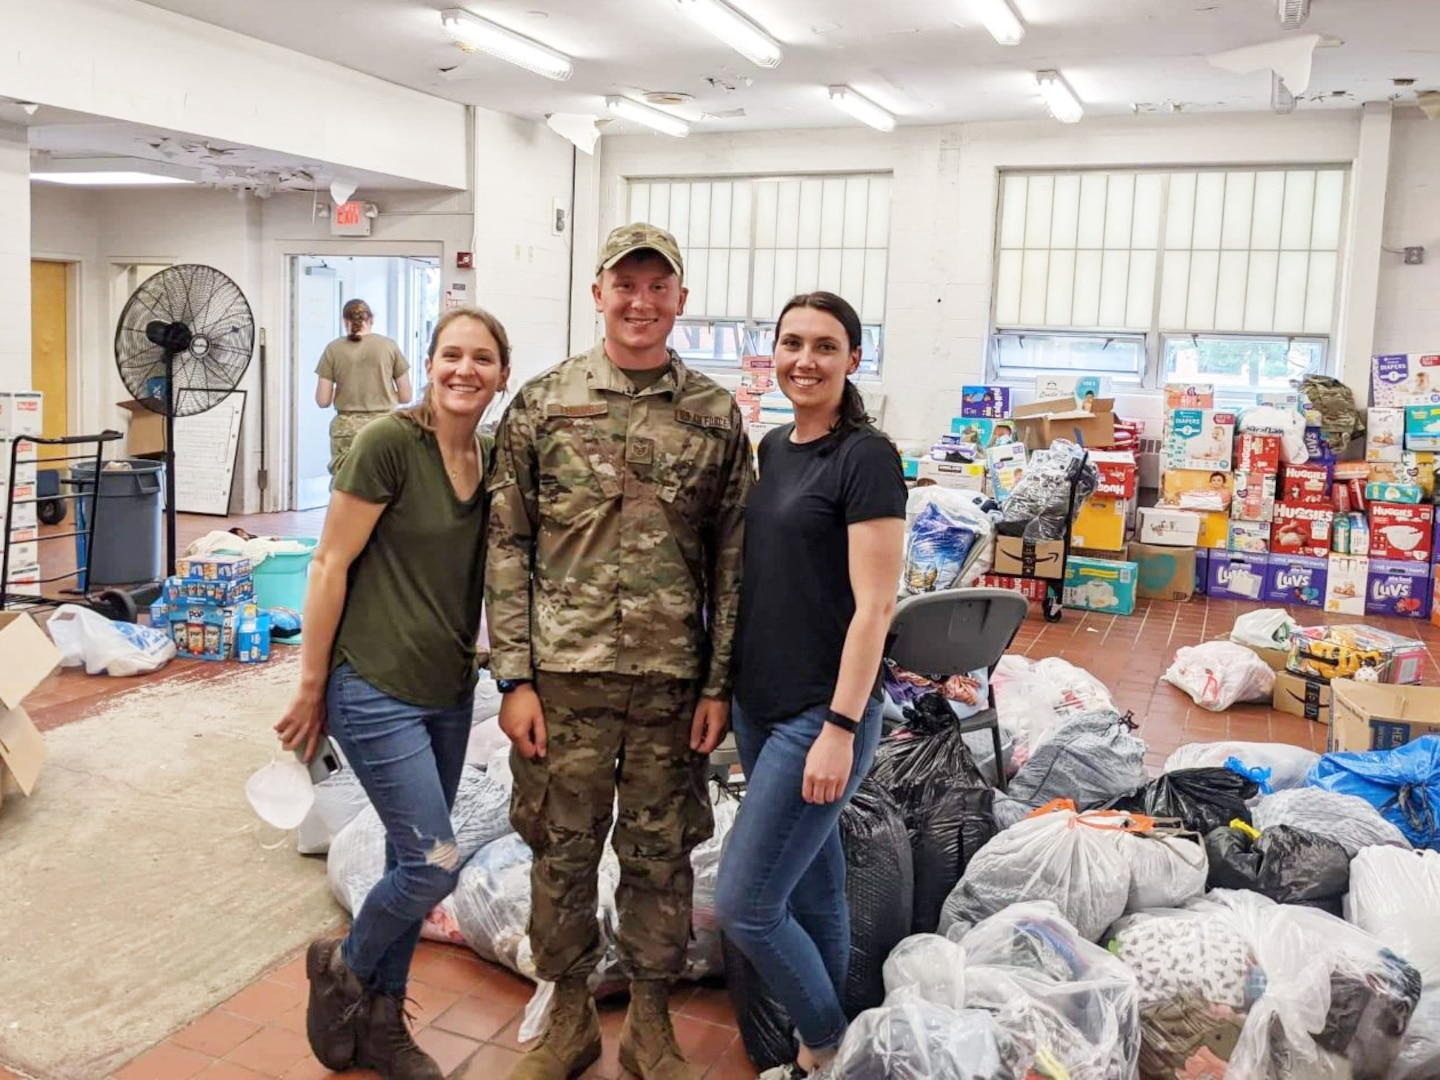 From left to right: Senior Airman Katlyn Legerstee, Staff Sgt. Jake Leonard, and Tech. Sgt. Cassandra Dowling, of the 157th Air Refueling Wing, inside the donation center at Joint Base McGuire-Dix-Lakehurst, Sept. 17, 2021.